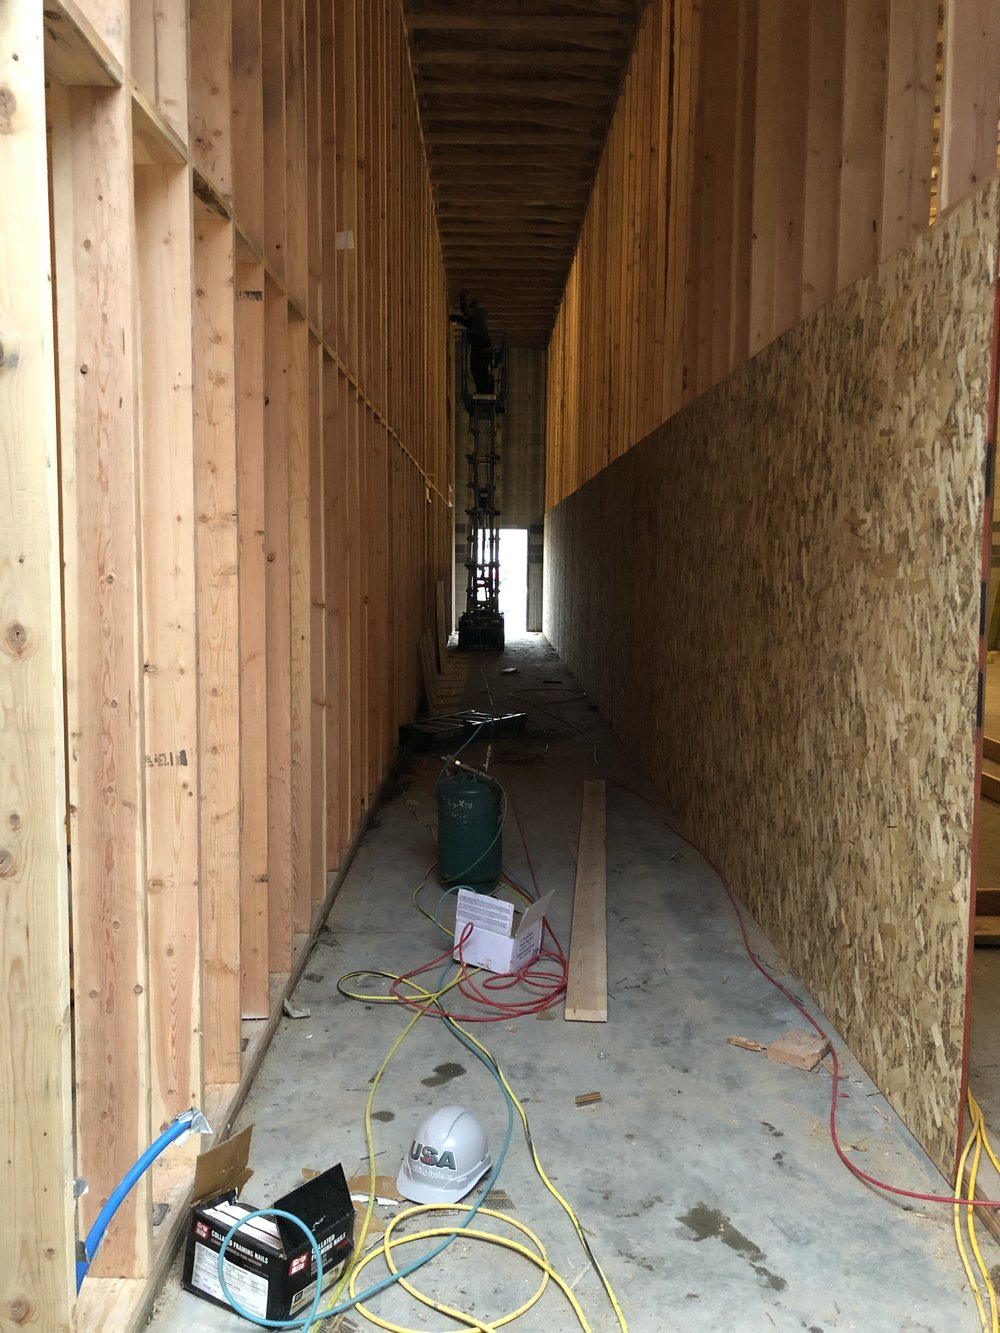 Looking down the hallway between studios toward the back door. OSB sheeting going up on the walls.